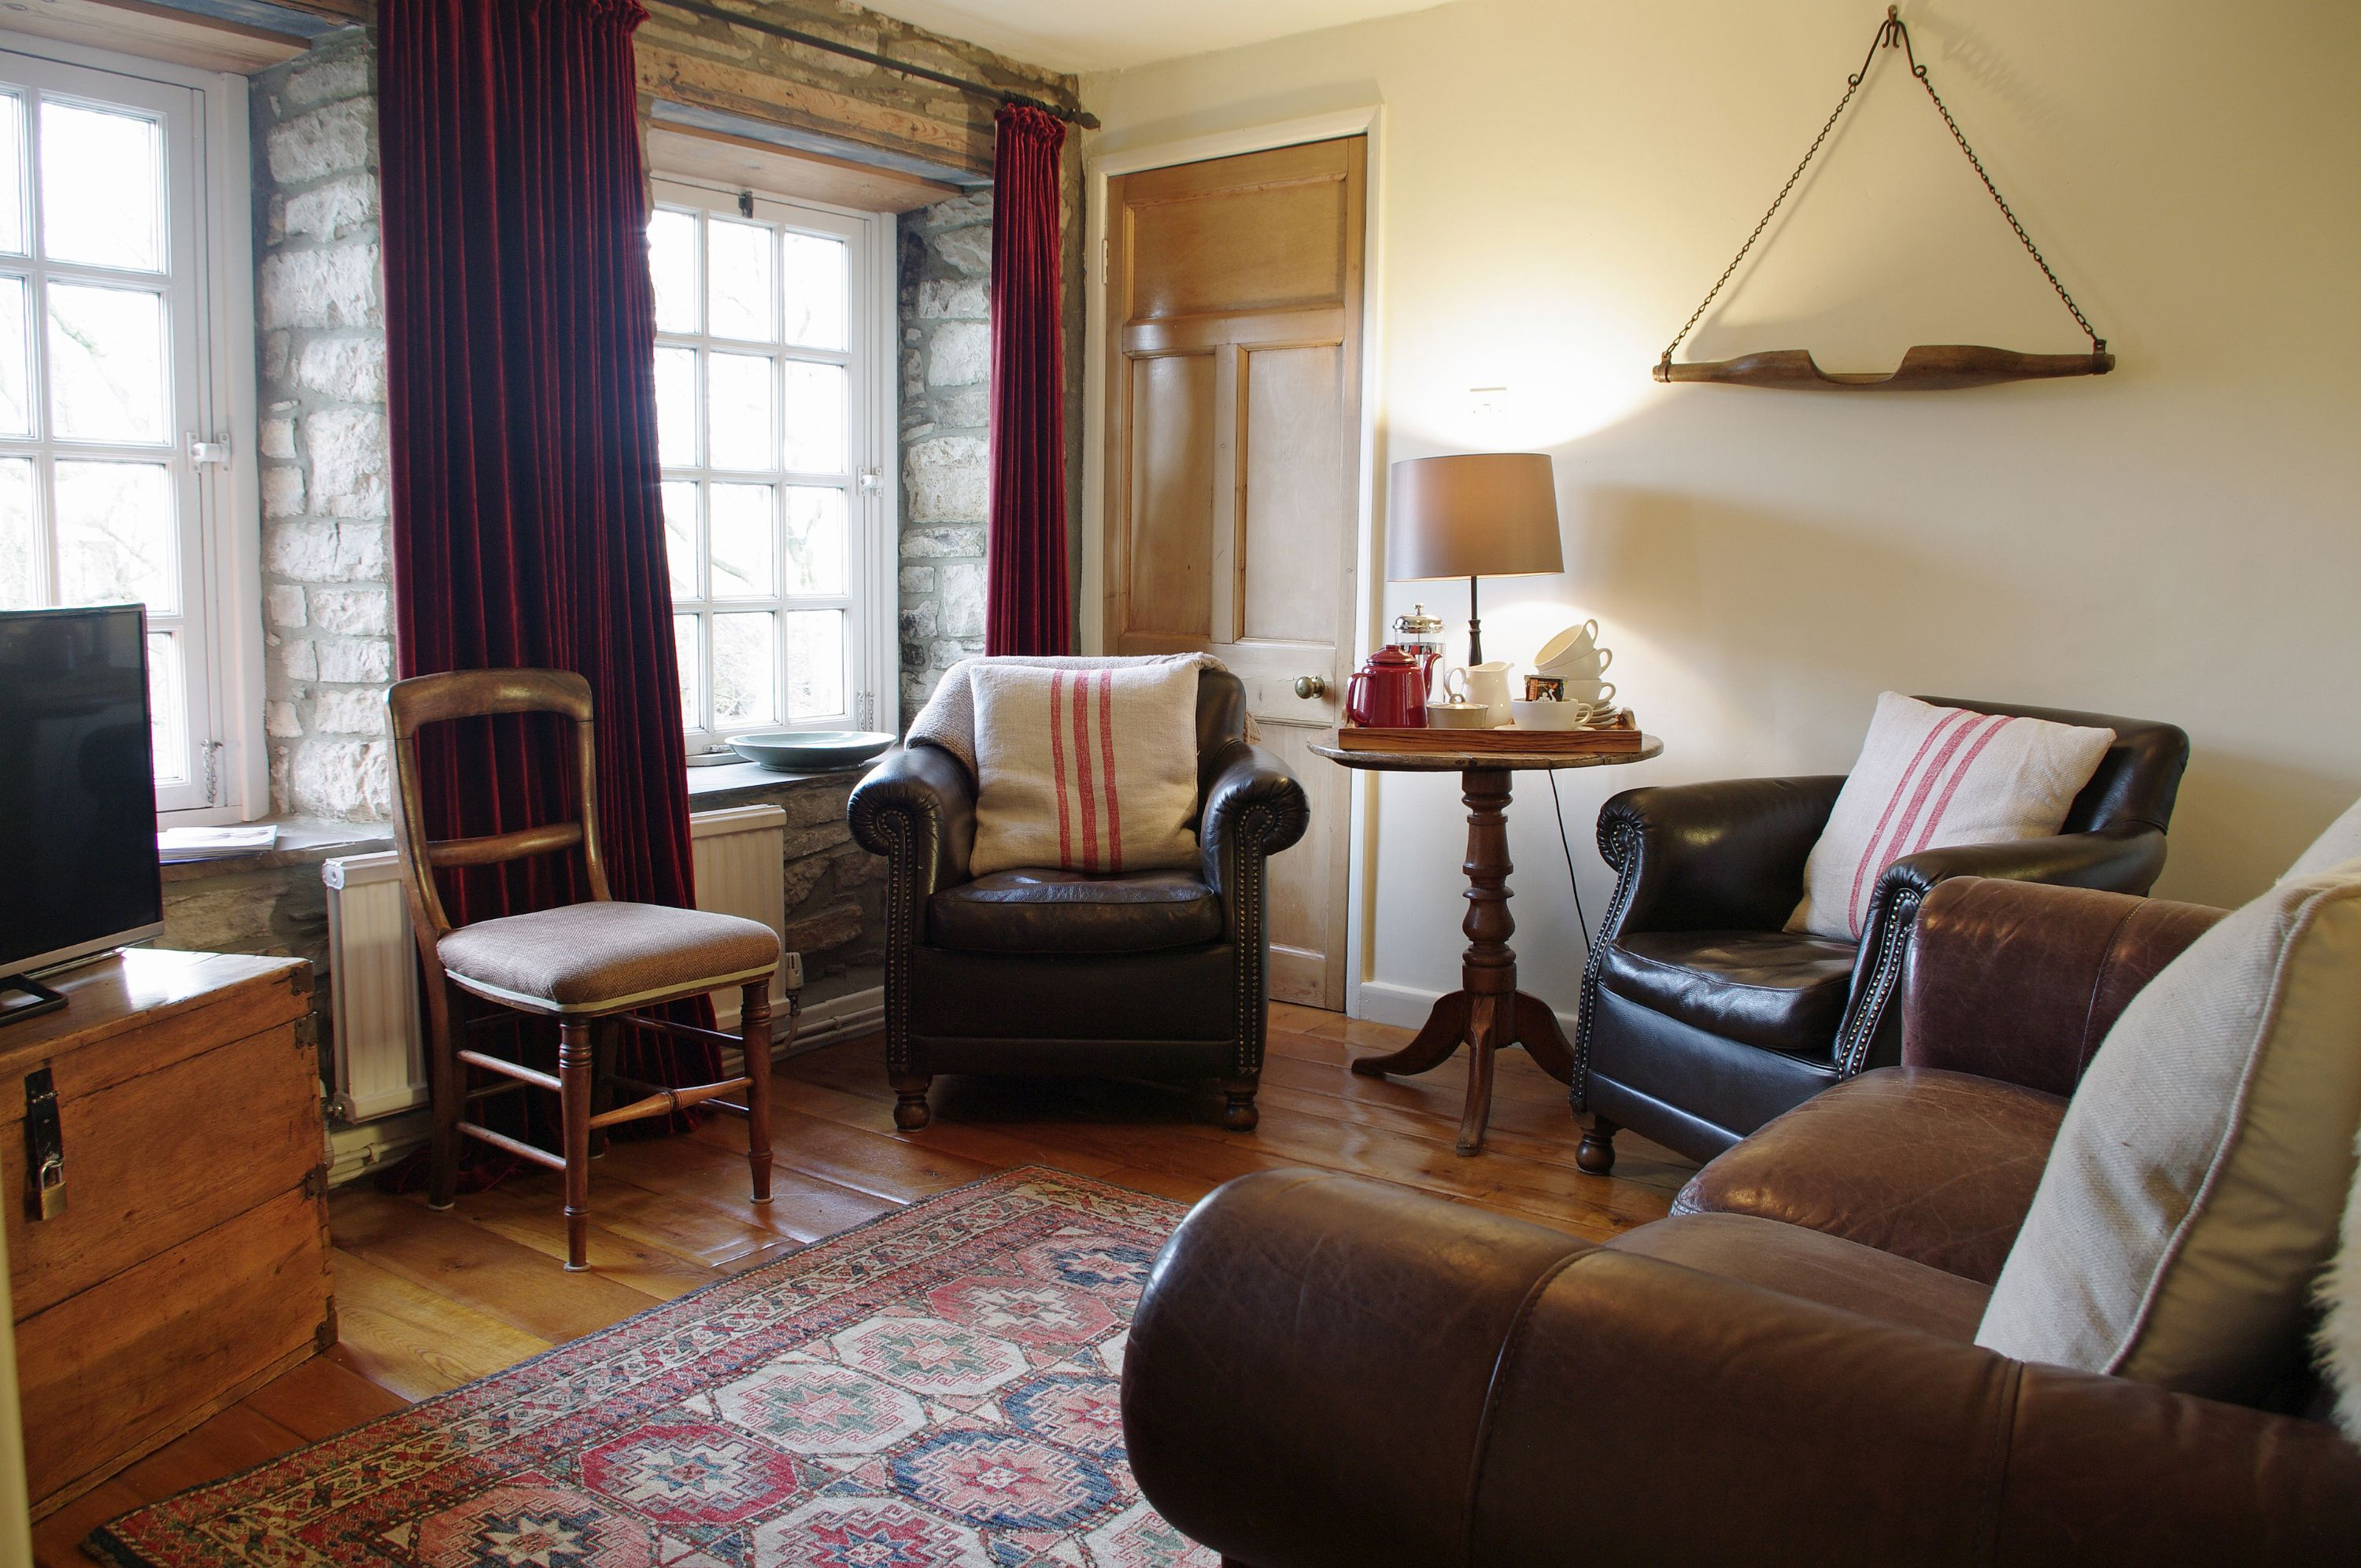 Lounge area at The Old Wheelhouse, The Mill in West Burton, Wensleydale in the Yorkshire Dales